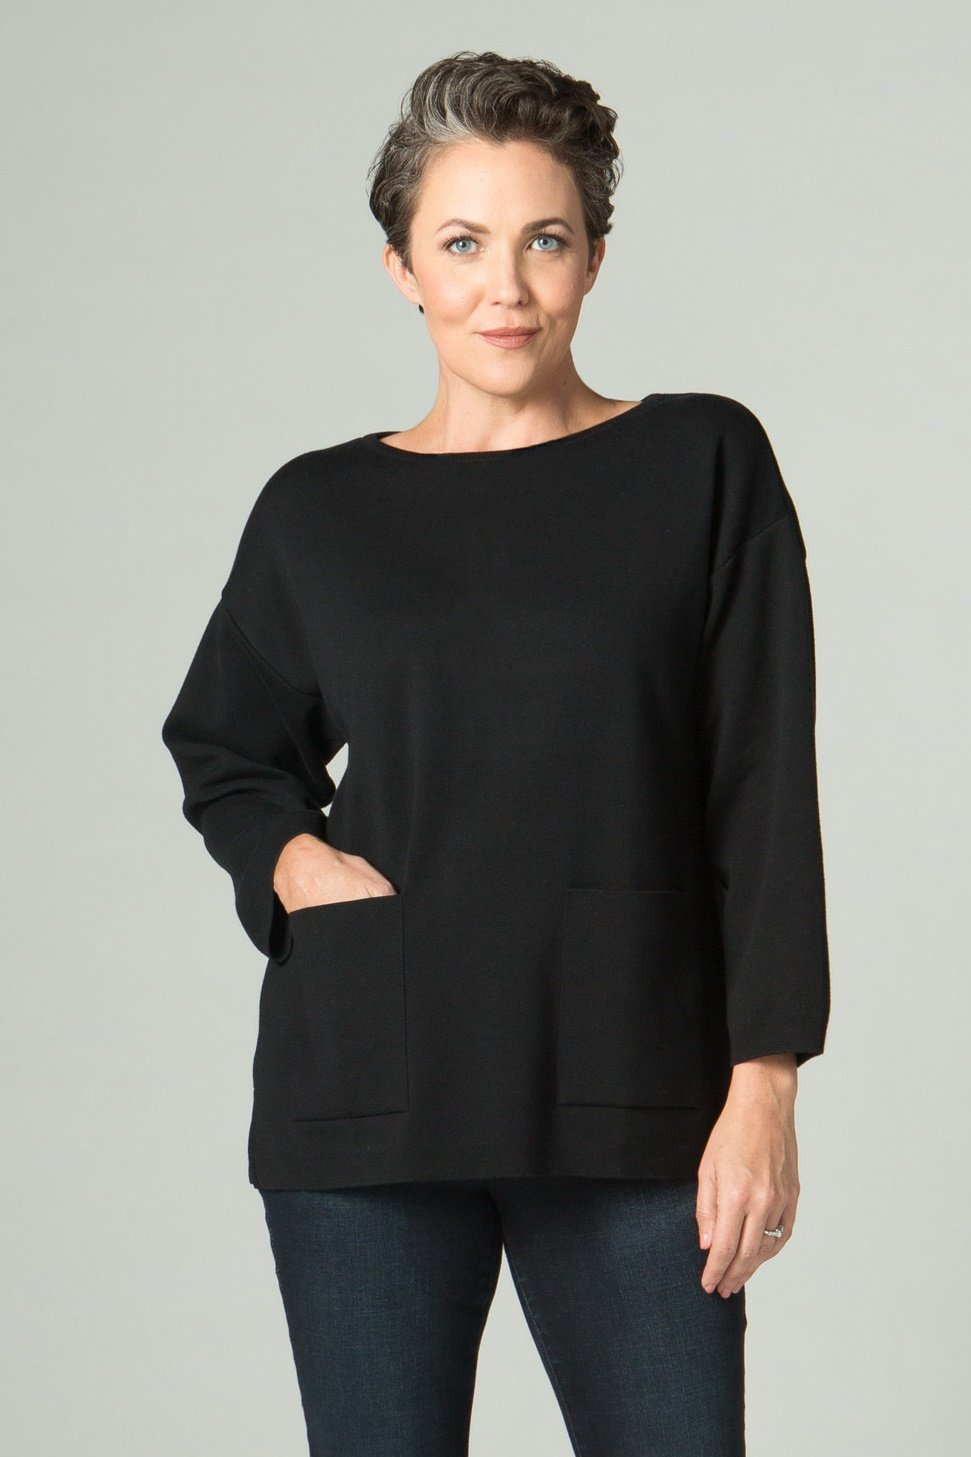 ¾ Sleeve 2 Pocket Top